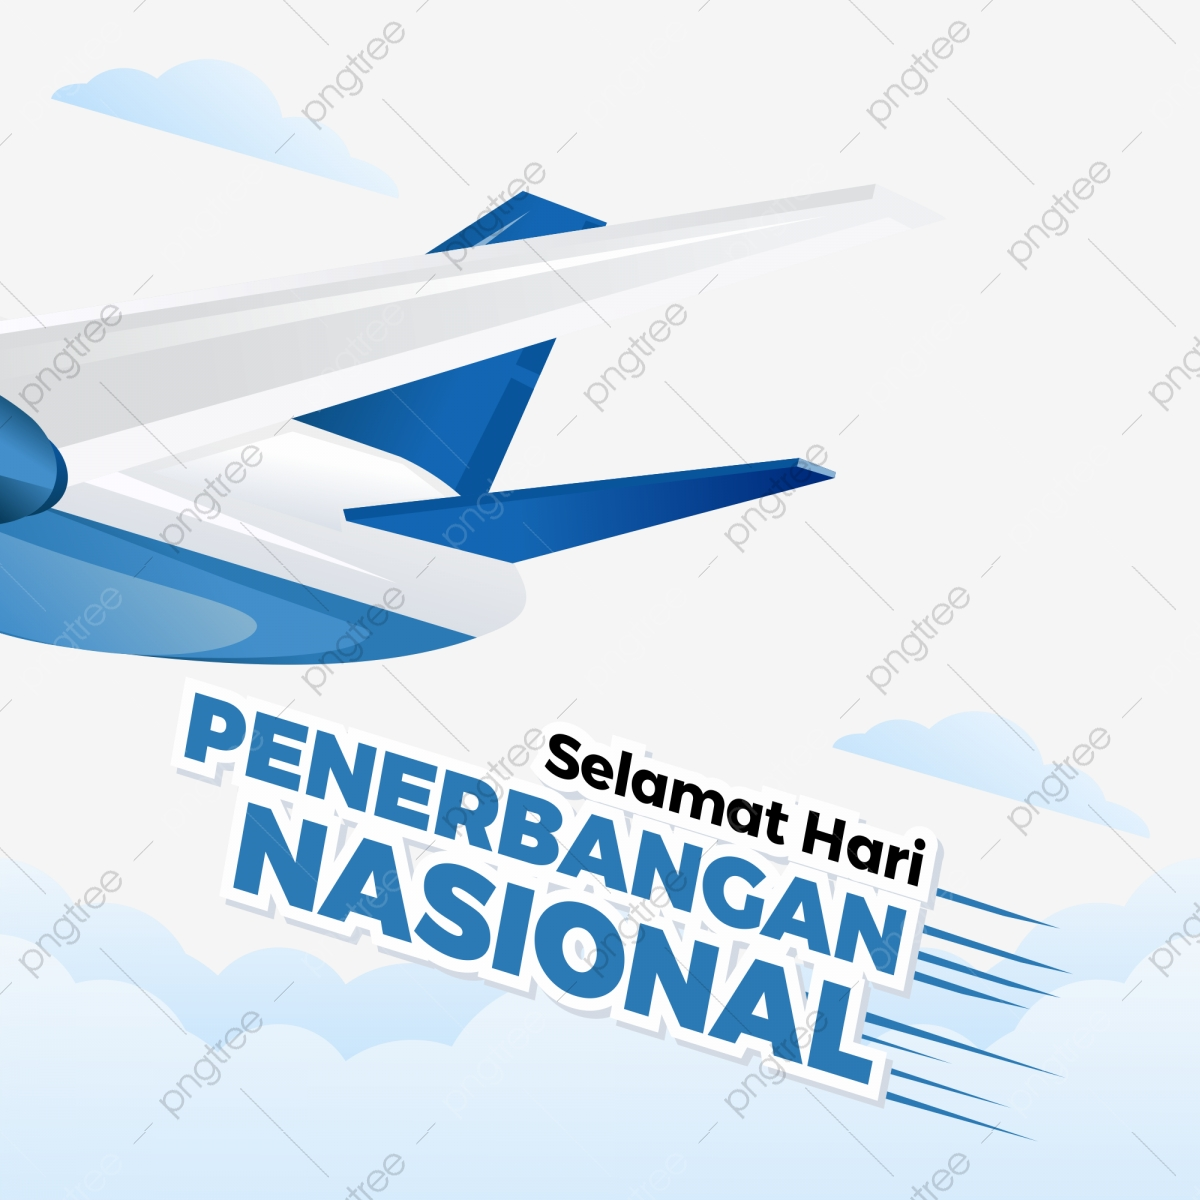 Plane Flying PNG, Vector, PSD, and Clipart With Transparent ...